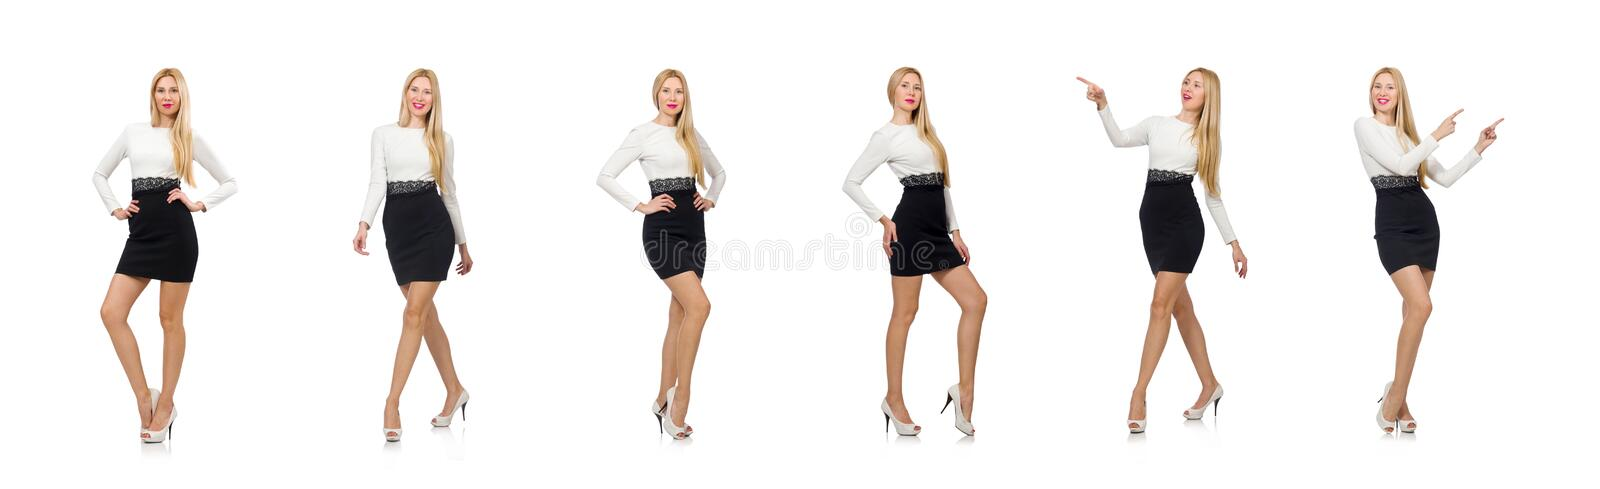 Pretty woman in black and white dress isolated on white stock images